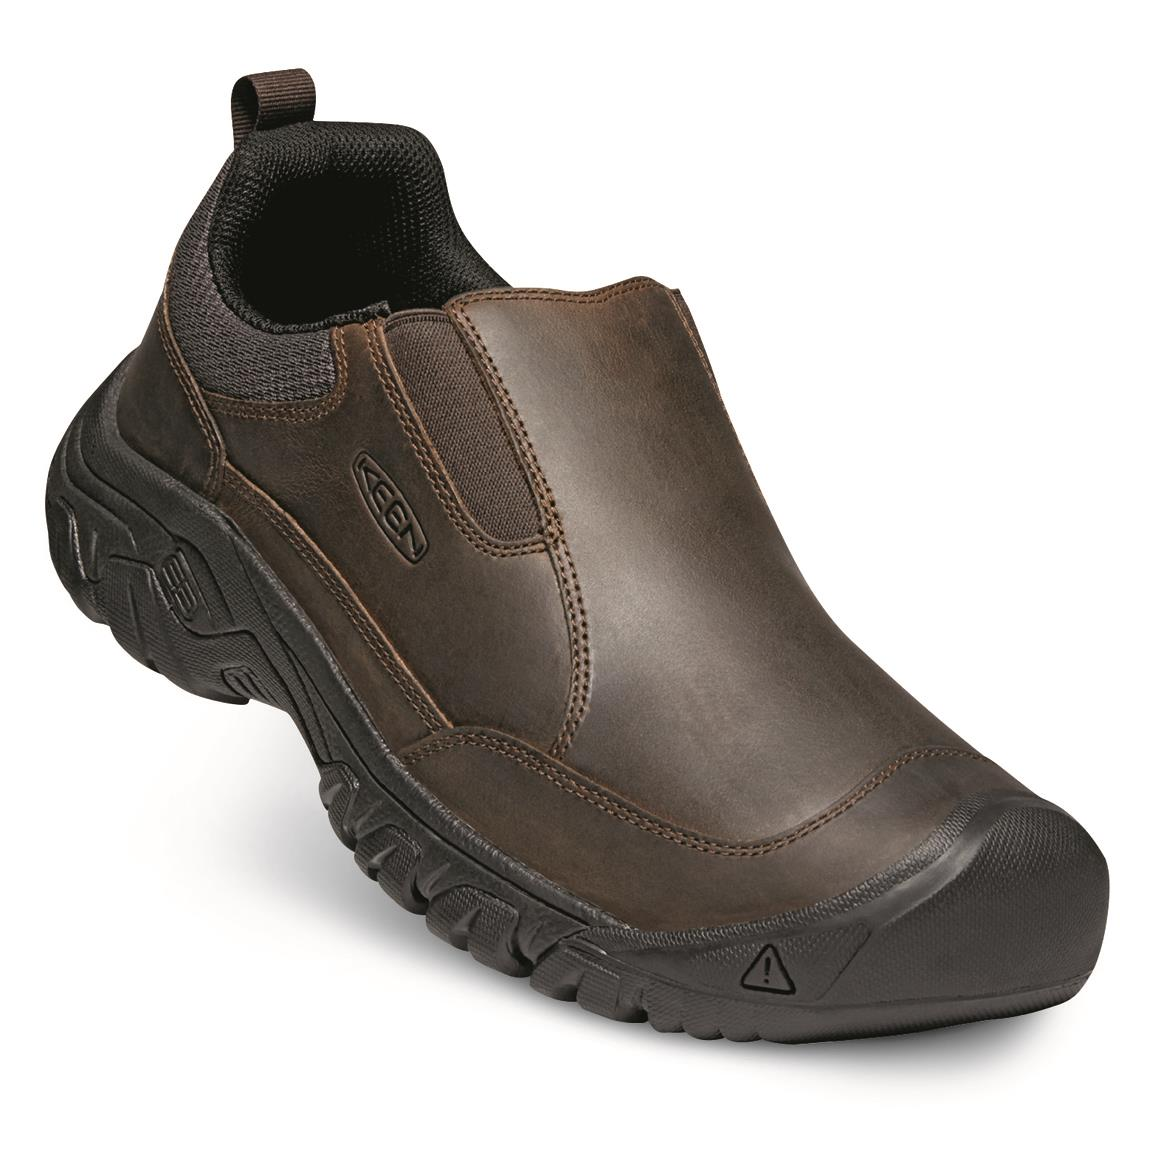 KEEN Men's Targhee III Slip-on Shoes, Dark Earth/mulch